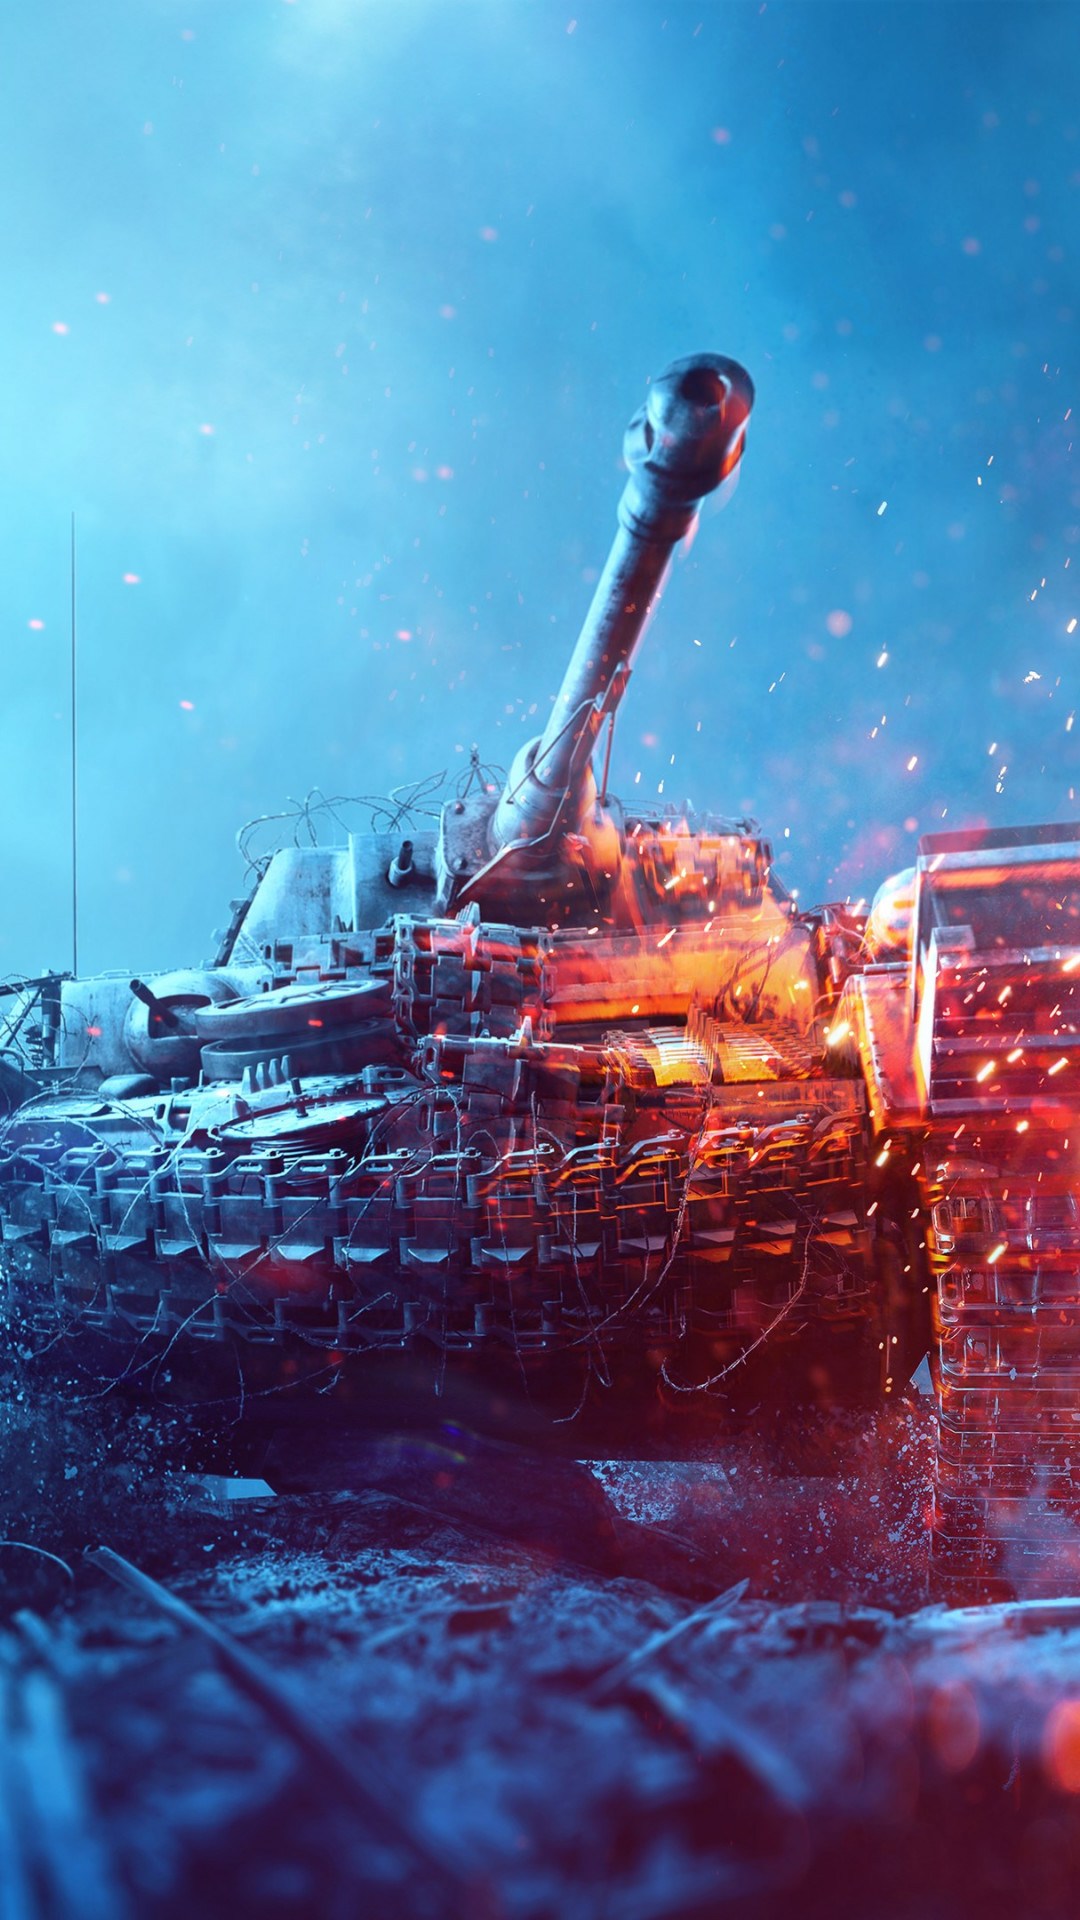 Download Wallpaper: Battlefield 5 Poster With Tanks 1080x1920